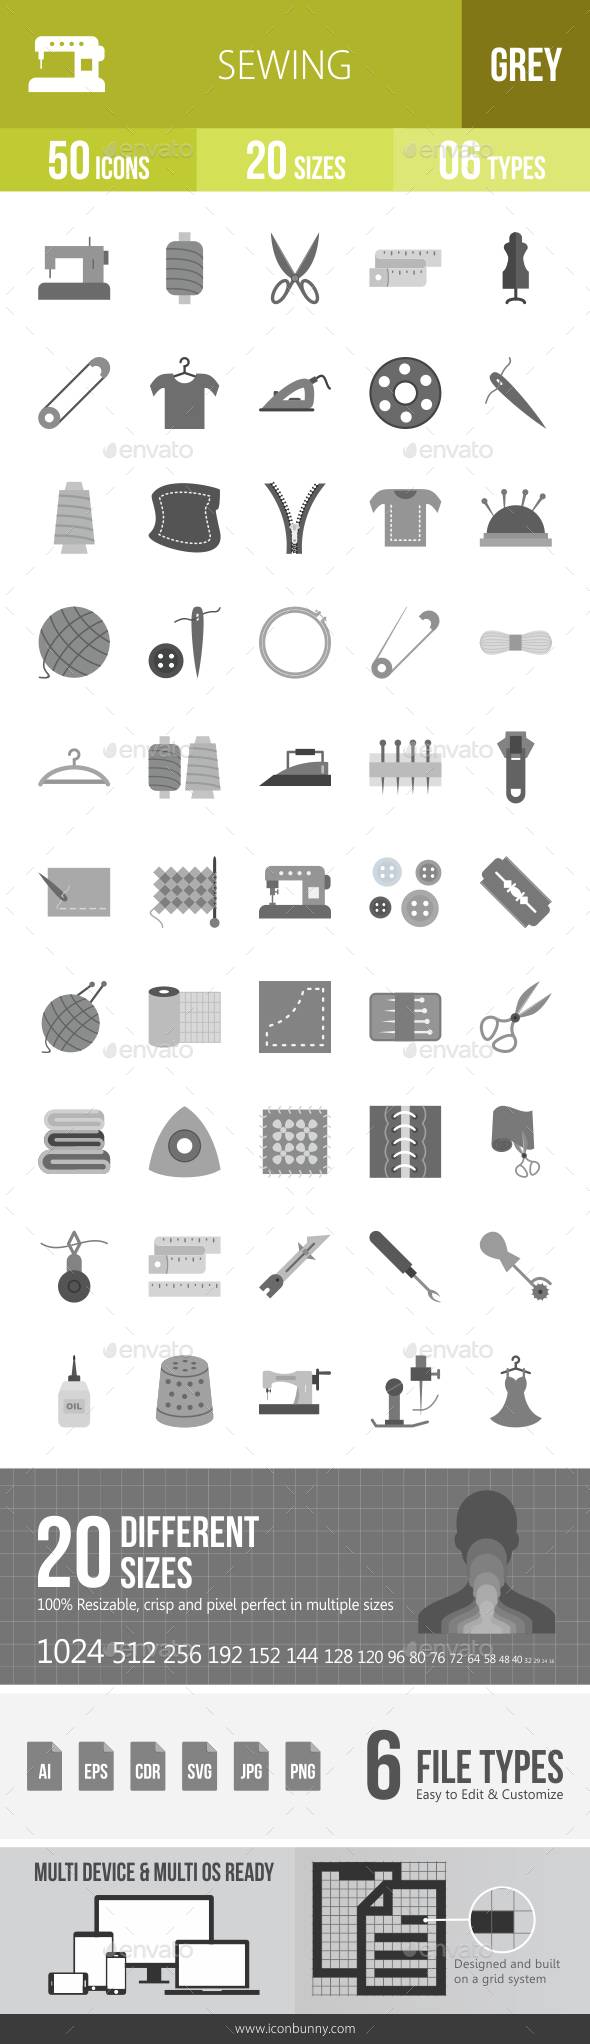 Sewing Greyscale Icons - Icons